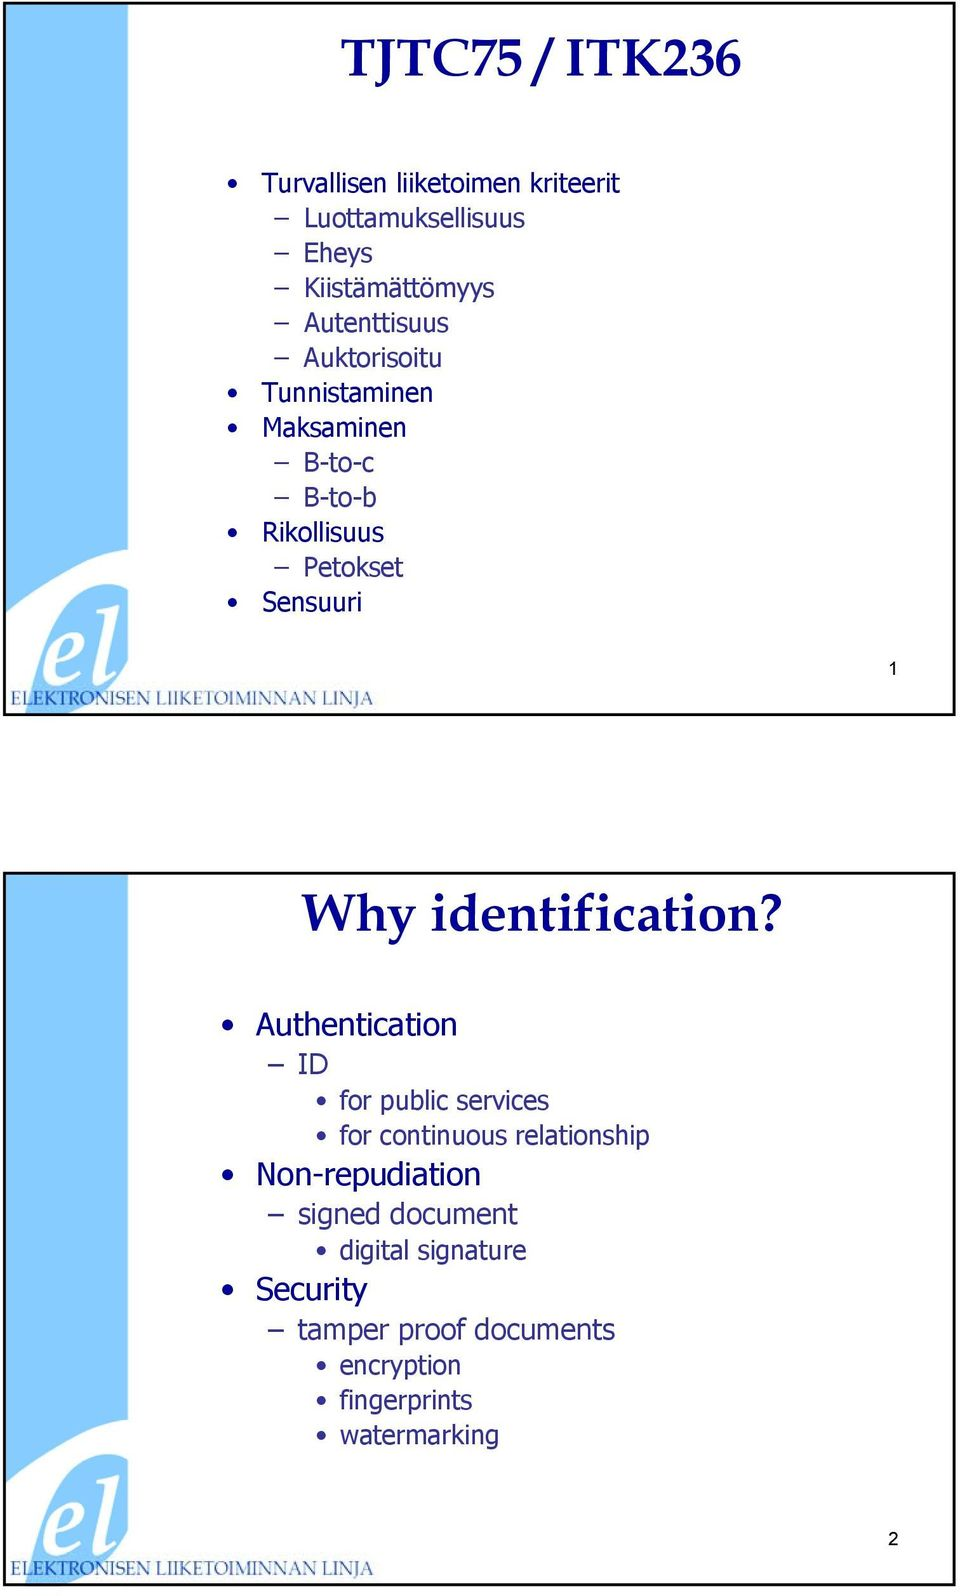 Why identification?